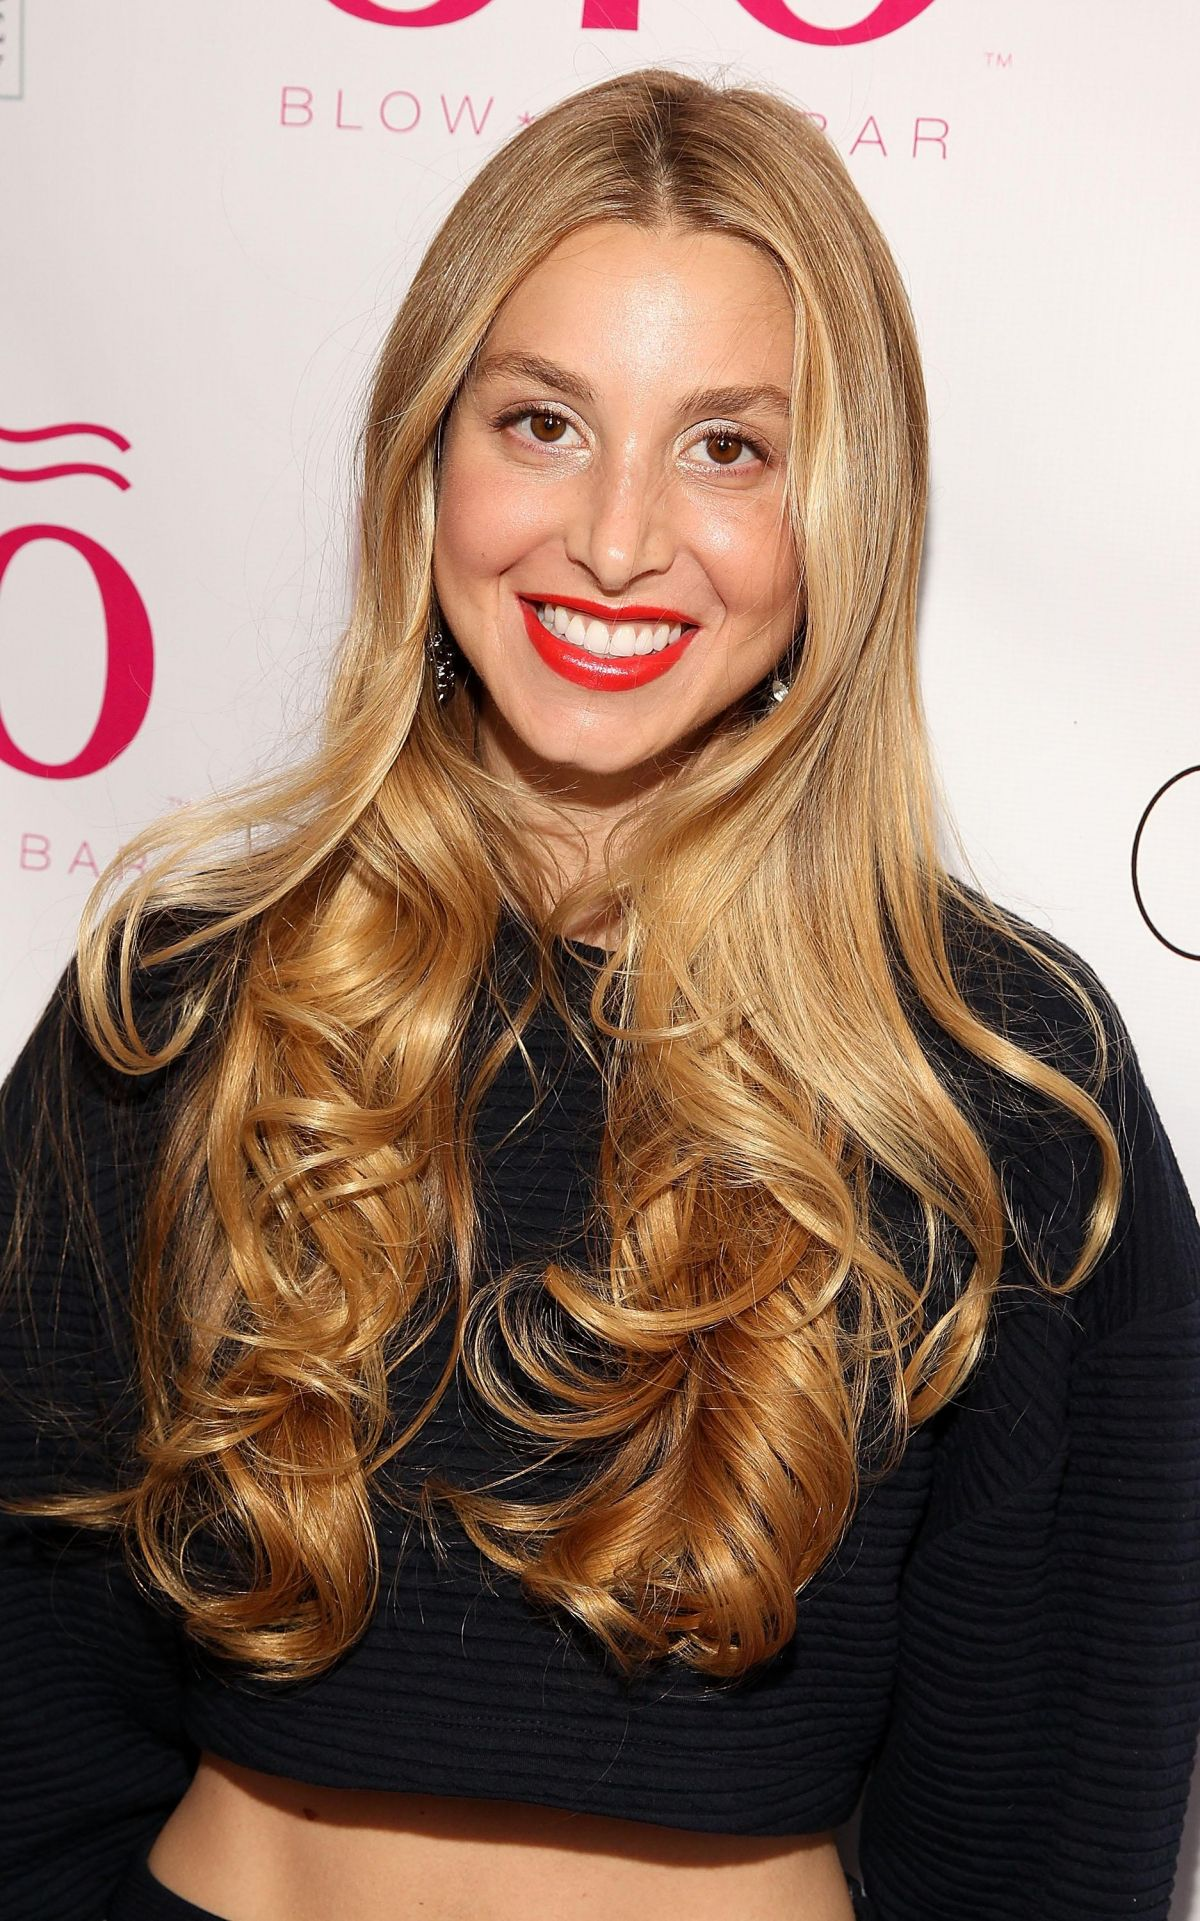 Whitney Port At Blo Blow Dry Bar